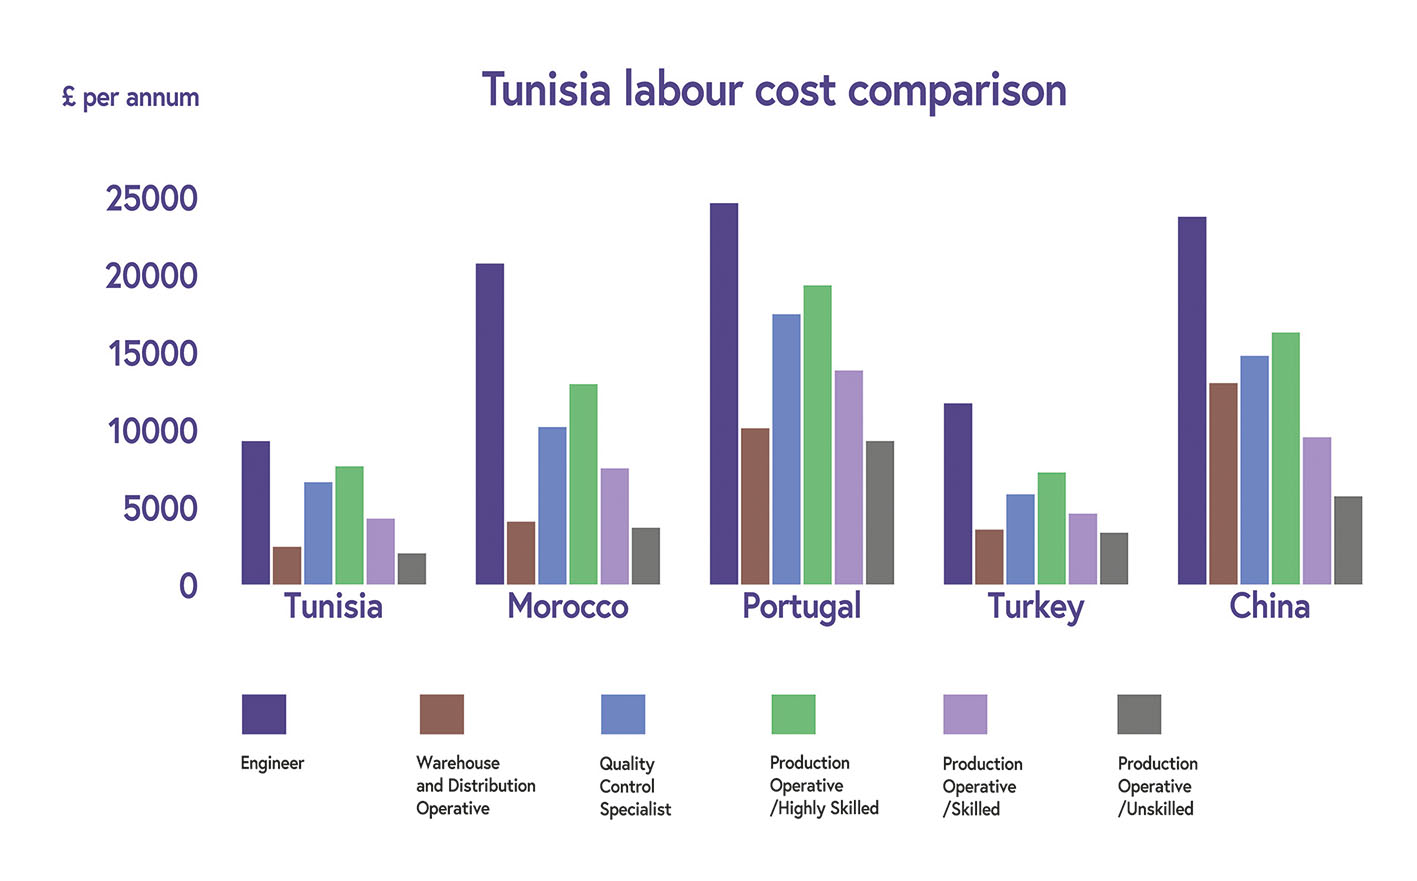 Tunisia v others - costs